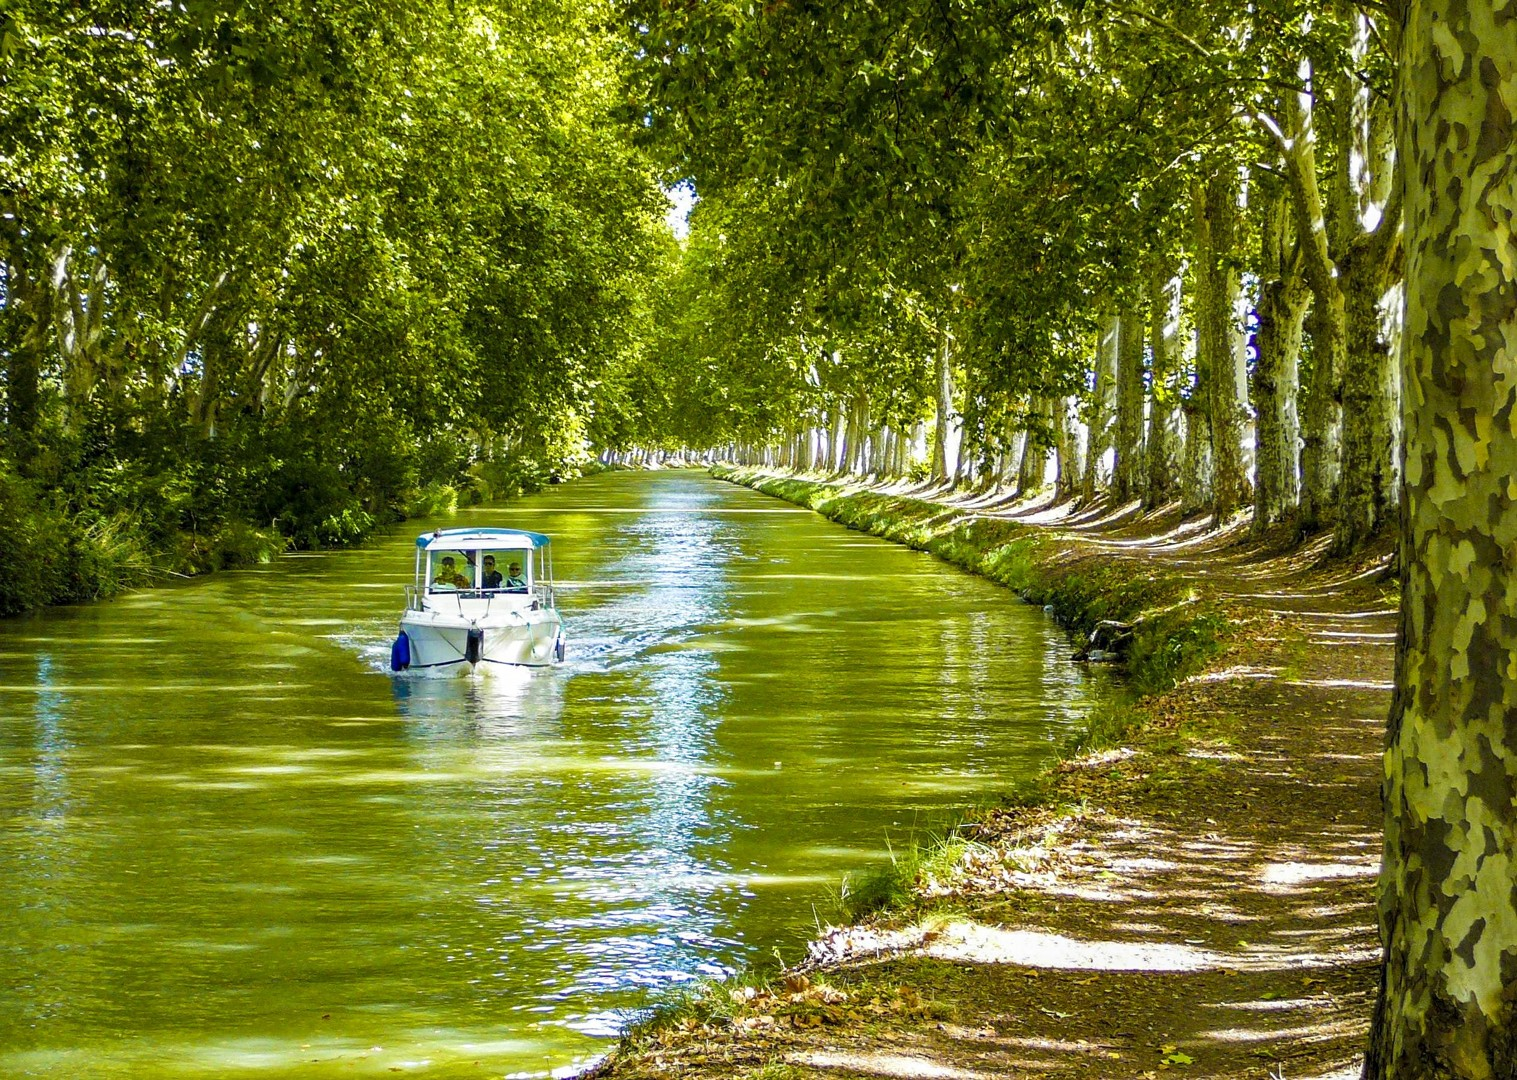 canal-du-nivernais-cycling-burgundy-france-saddle-skedaddle-self-guided.jpg - France - Burgundy - Caves and Canals - Self-Guided Leisure Cycling Holiday - Leisure Cycling